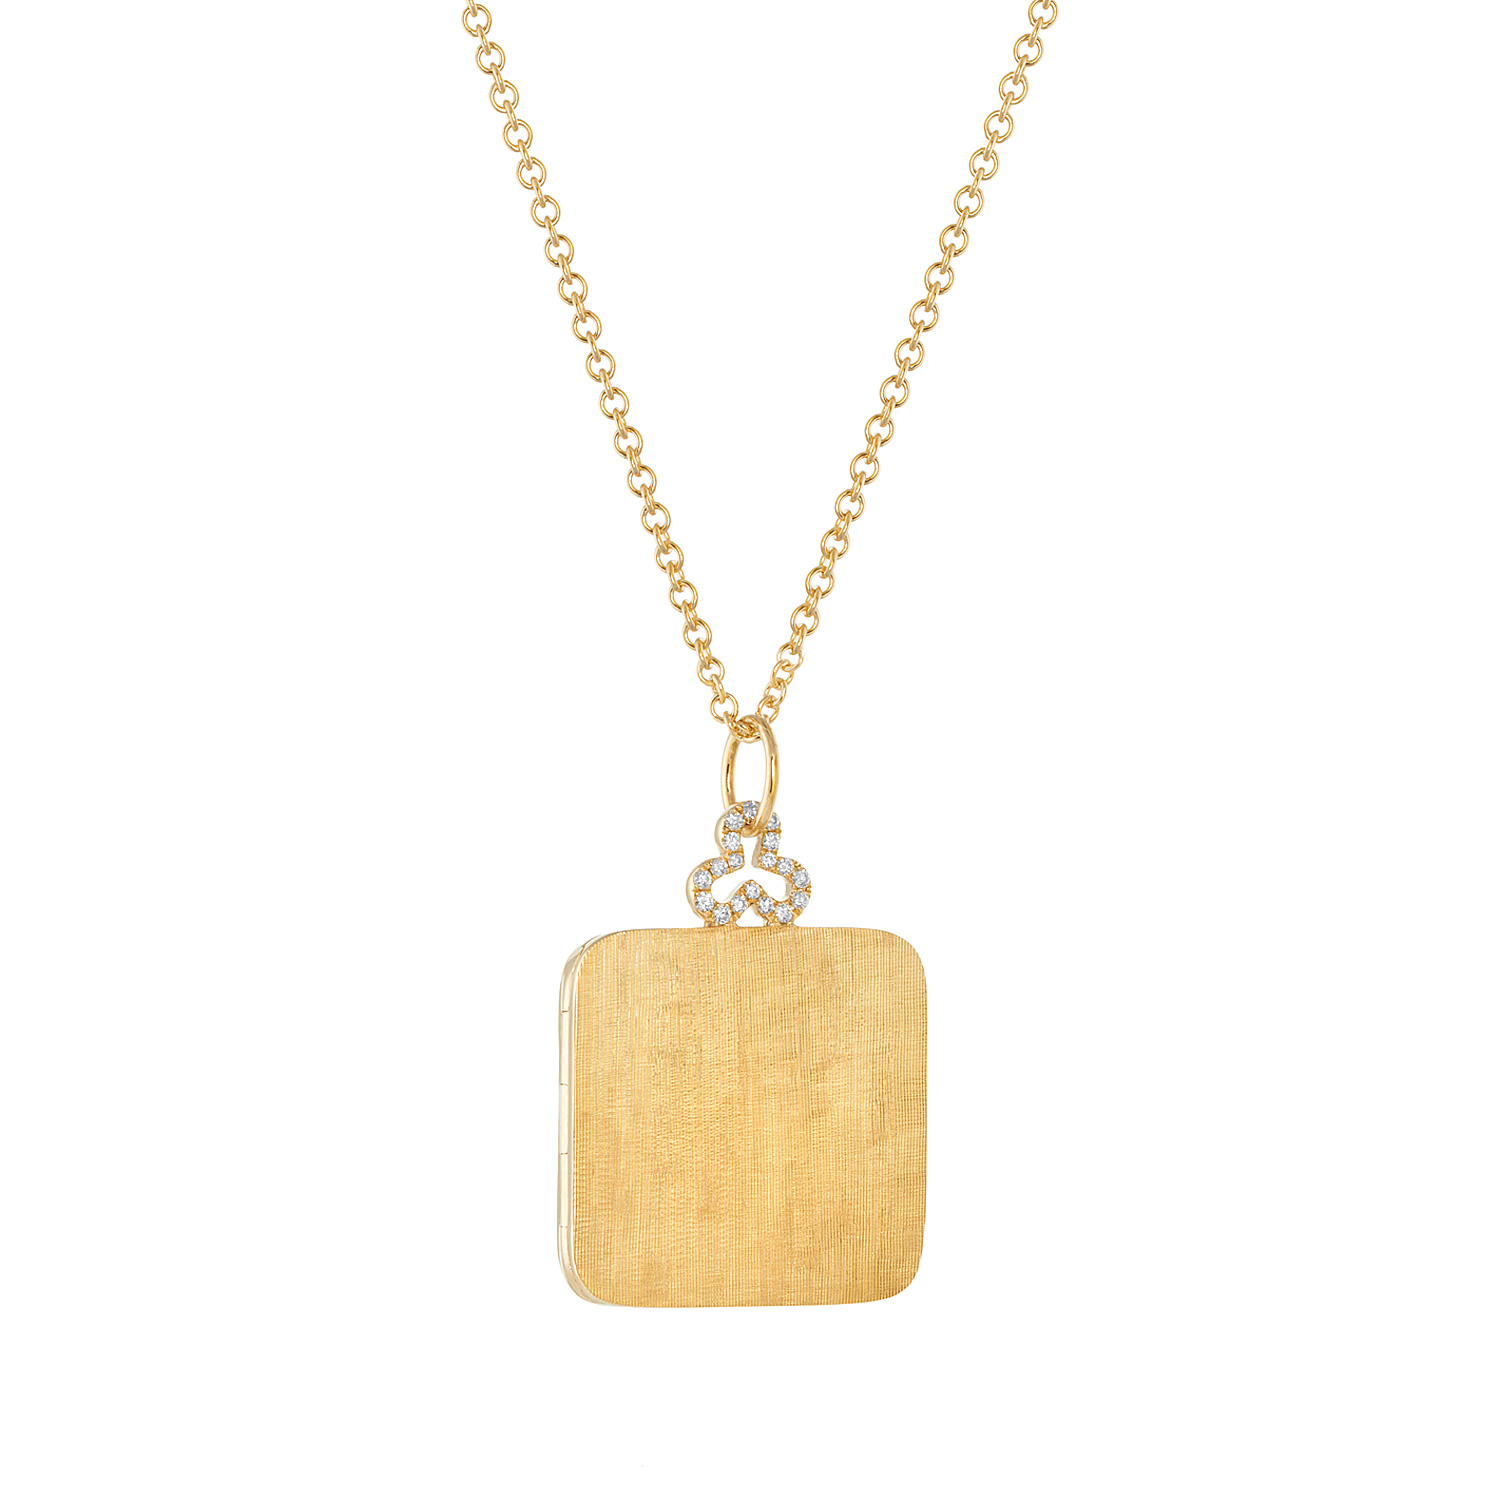 18K Yellow Gold, Large, Florentine Finish